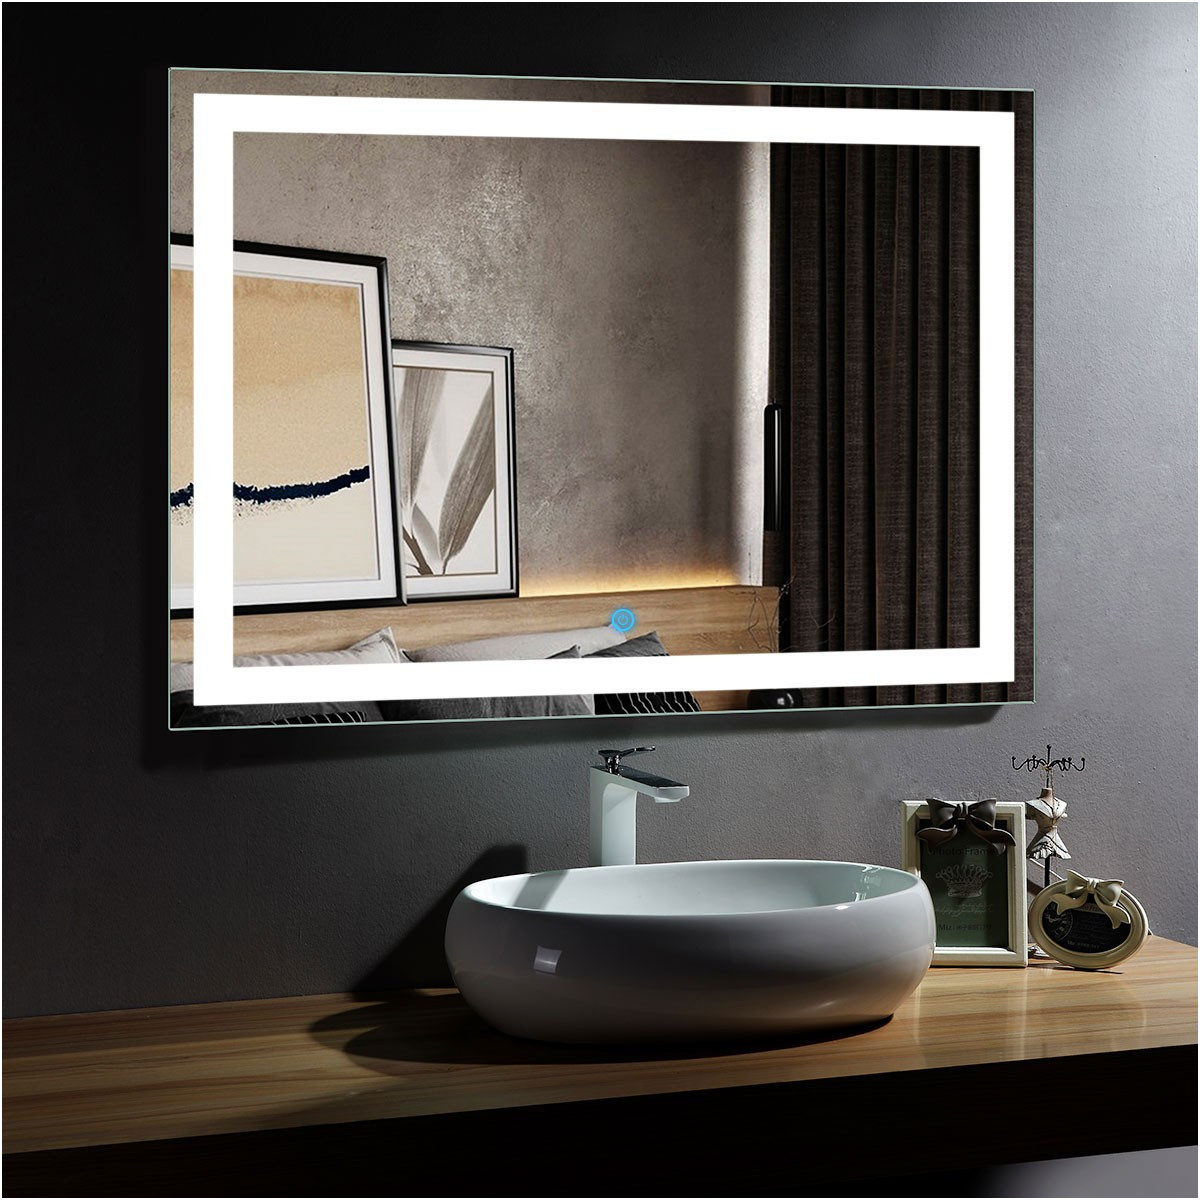 Inspirational Easy Way to Frame Bathroom Mirror